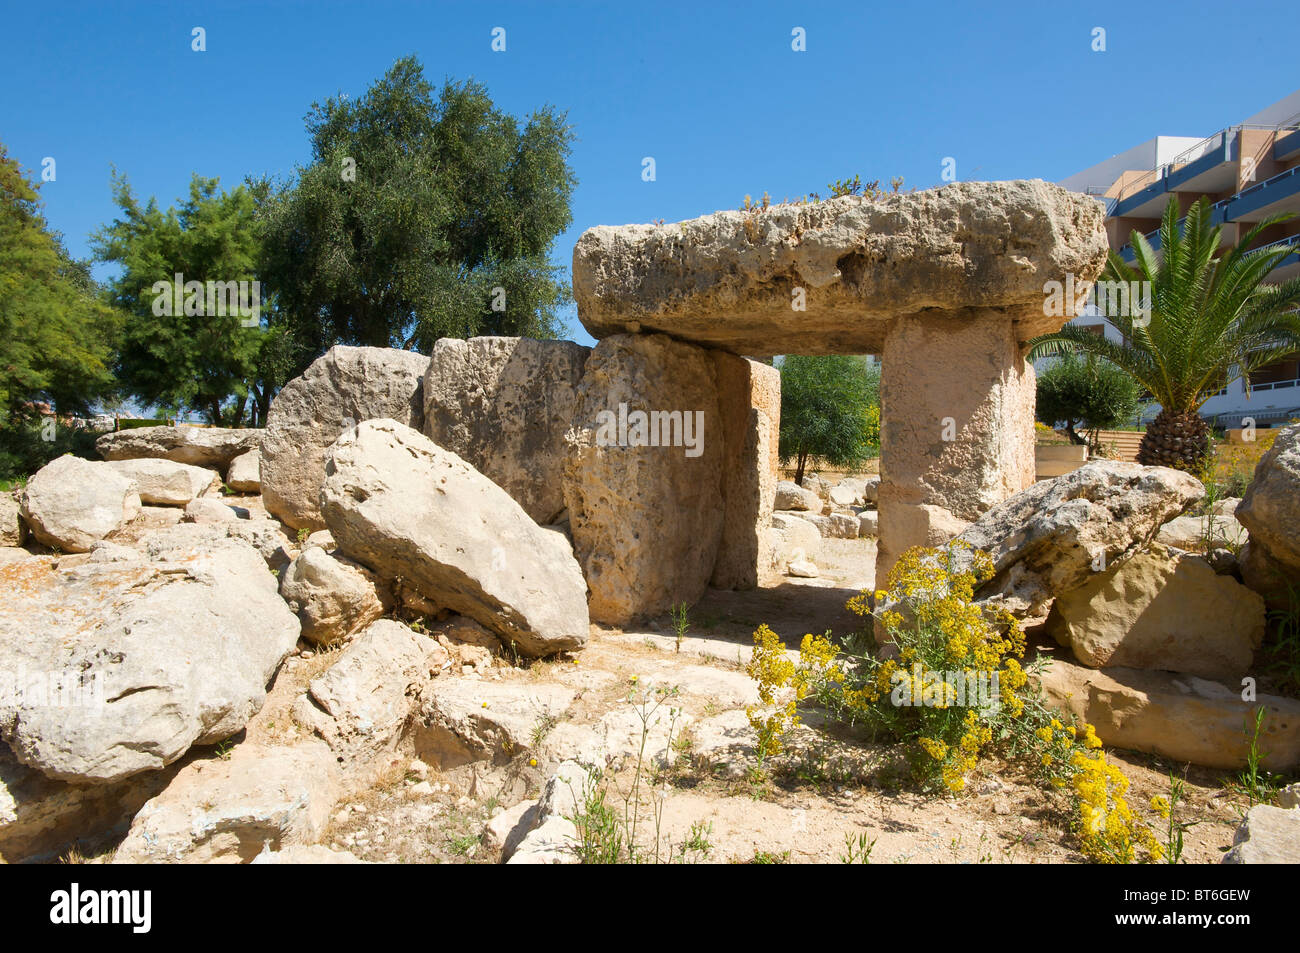 Megalithic tomb in St Pauls Bay, Malta - Stock Image